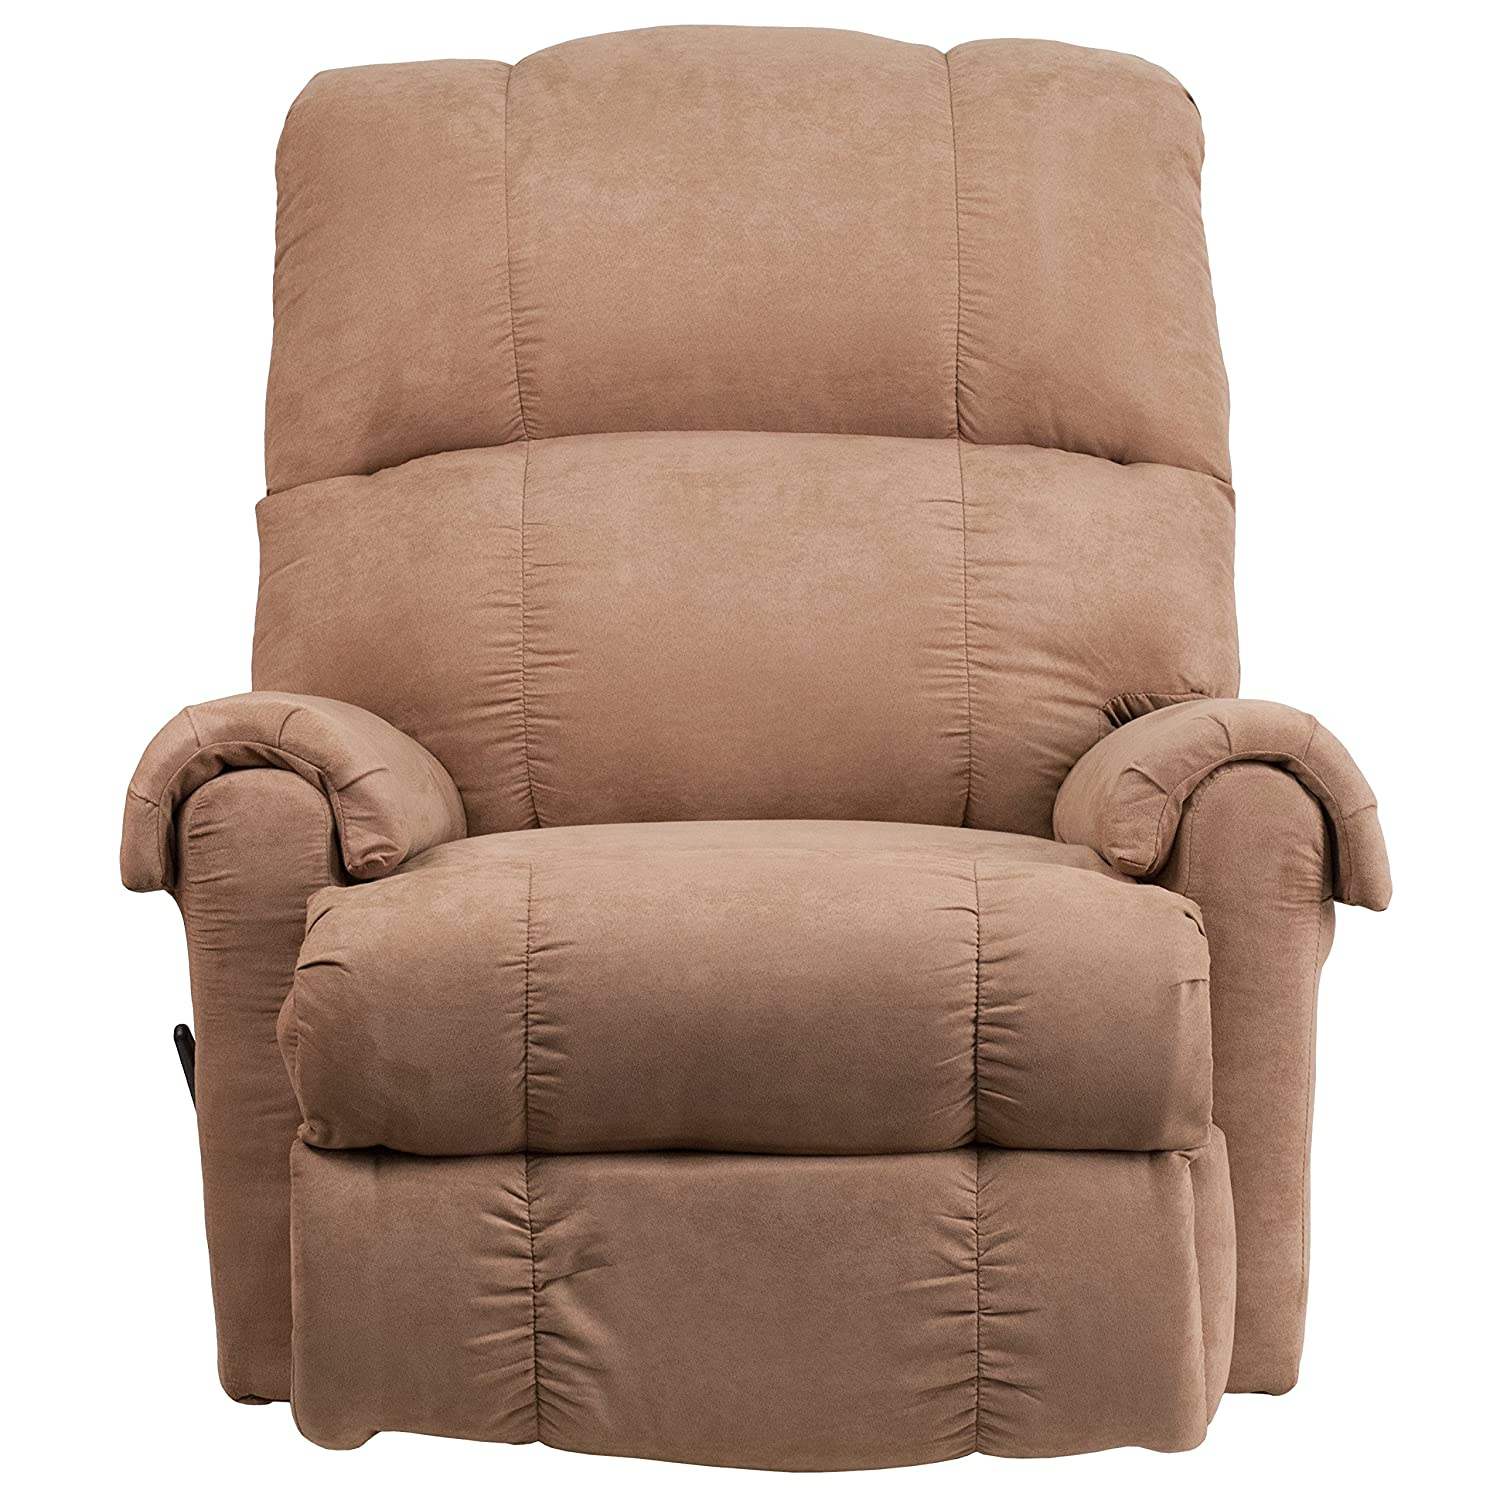 Amazon.com: Flash Furniture Contemporary Victory Lane Taupe Fabric Rocker  Recliner: Kitchen U0026 Dining